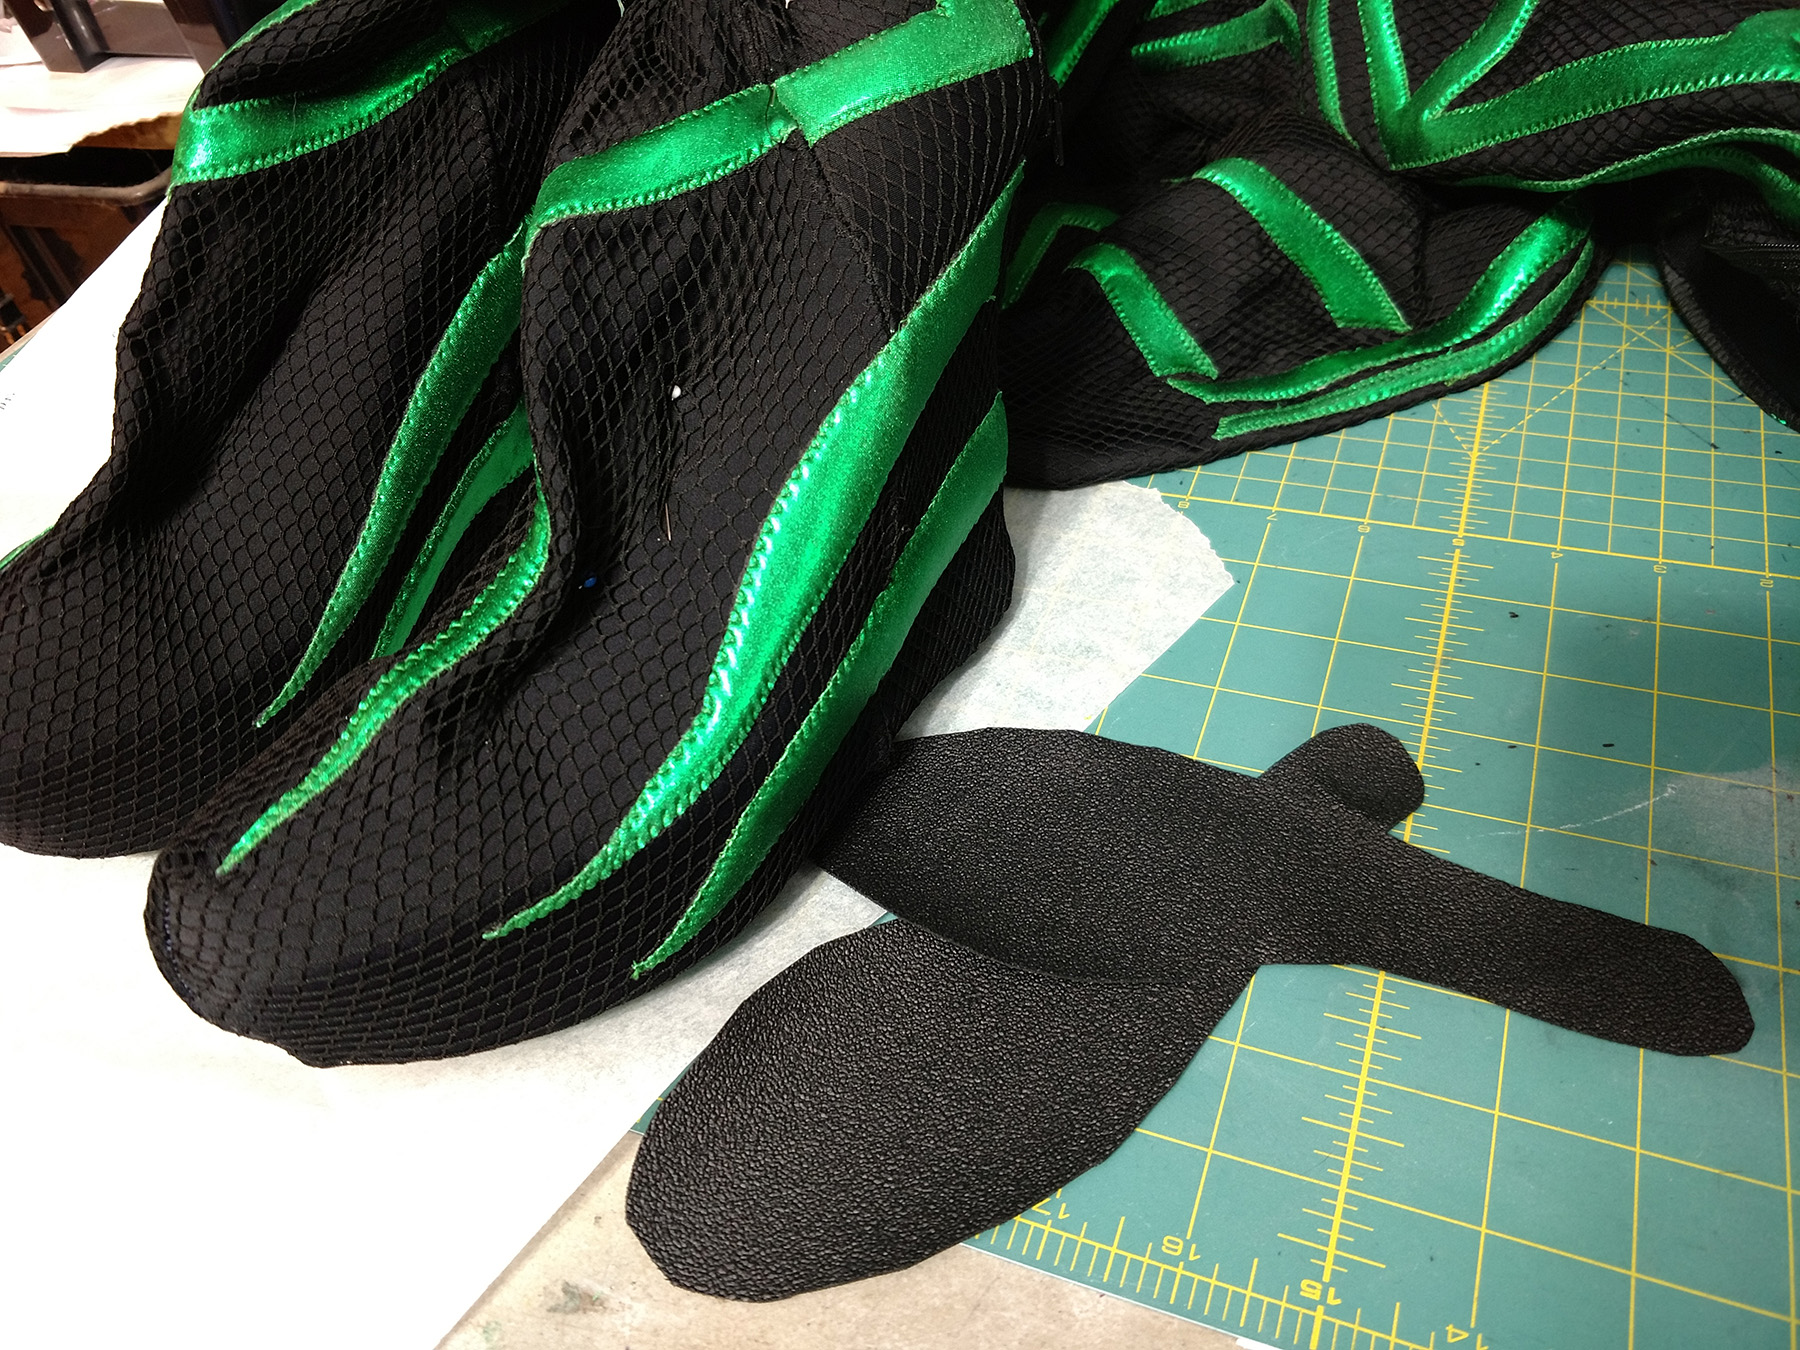 A close up view of the feet of the Hela cosplay, next to two black soles.